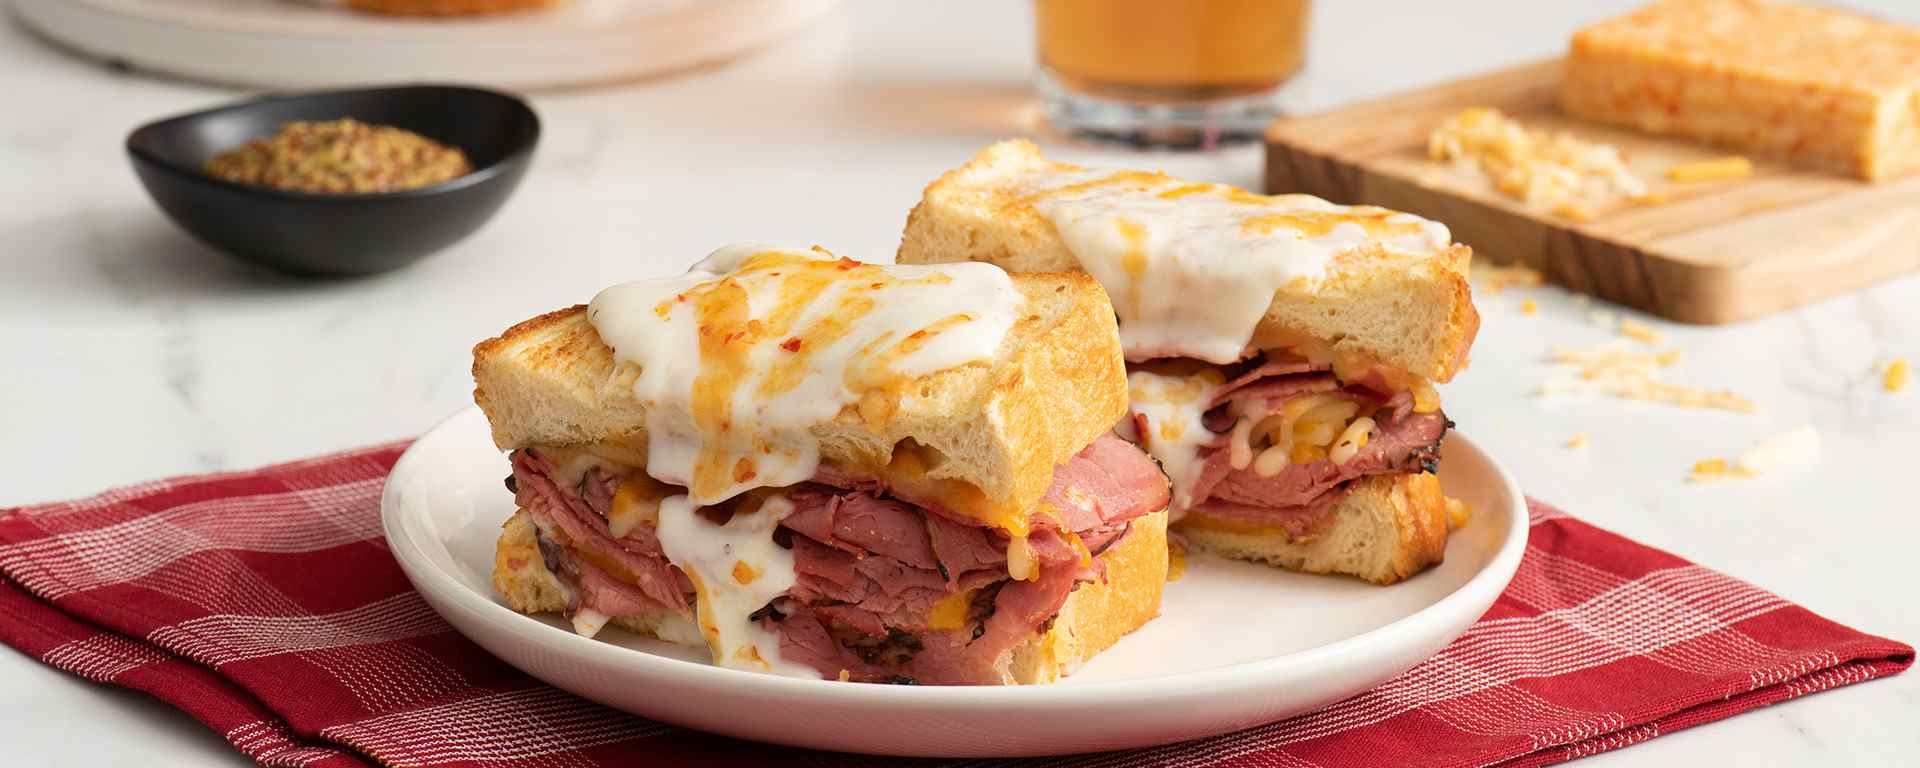 Photo of - Smoked Meat Croque-Monsieur with Spicy Cheese Sauce